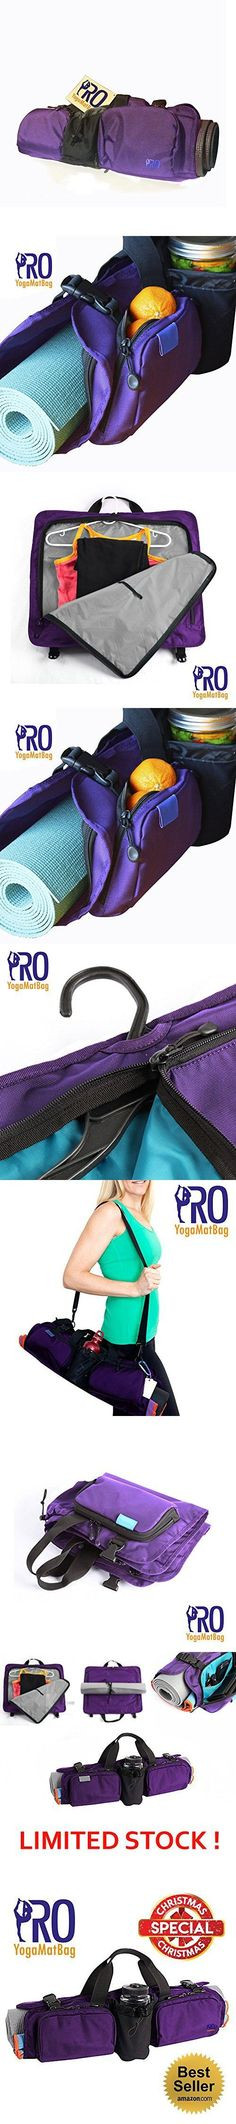 PRO Yoga Mat Bag - Purple Super Quality Unique Yoga Mat Bag Product - Large Pockets - Holds Smartphone, Water Bottle, Fruits, Wallet - Super Durable - Stain And Water Resistant